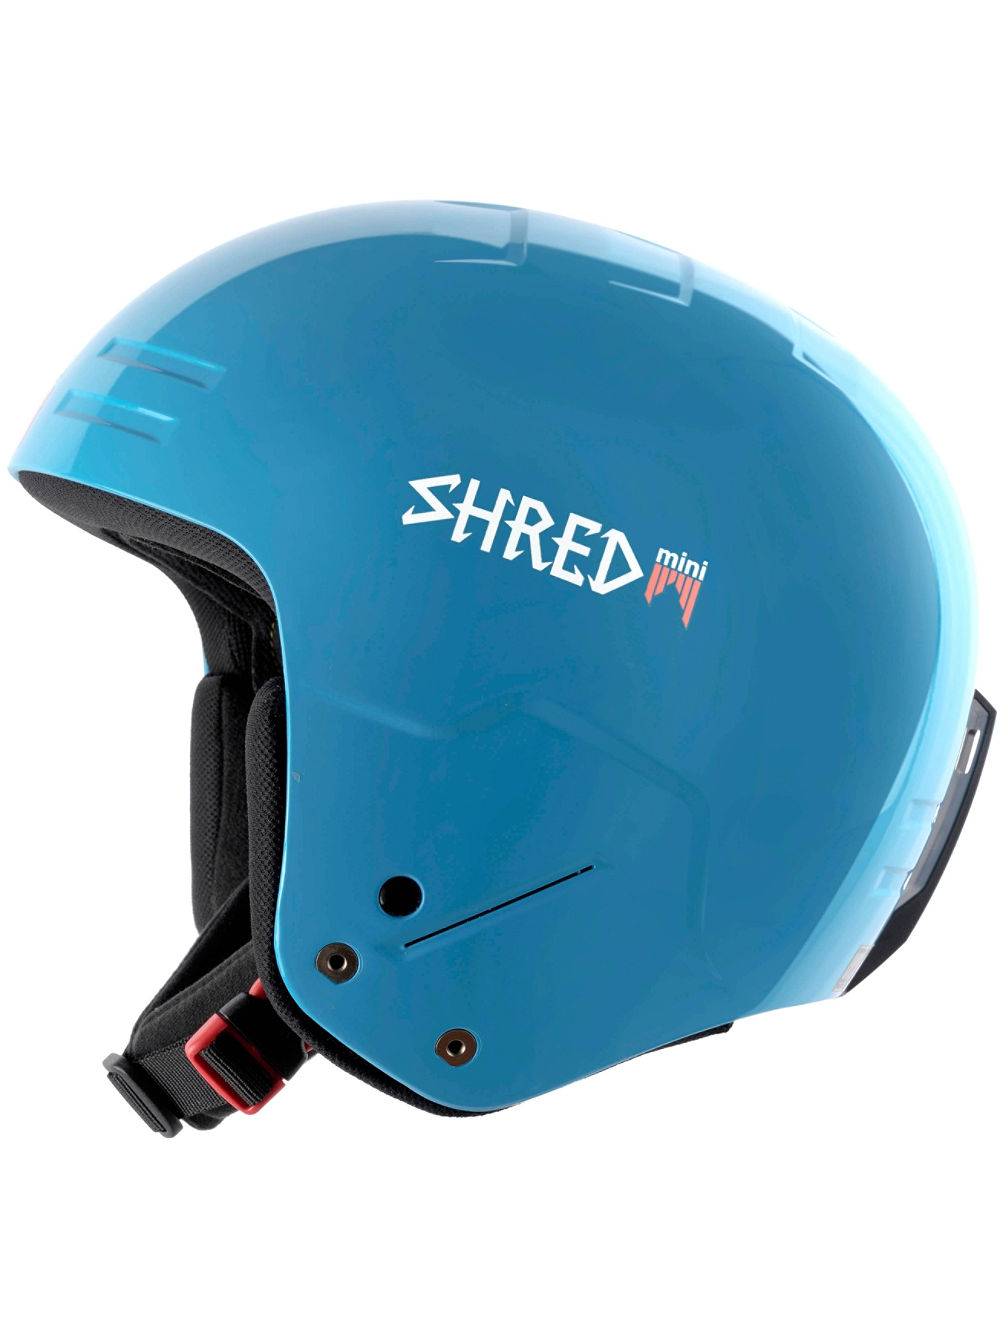 Basher Snowboard Helmet Youth Youth